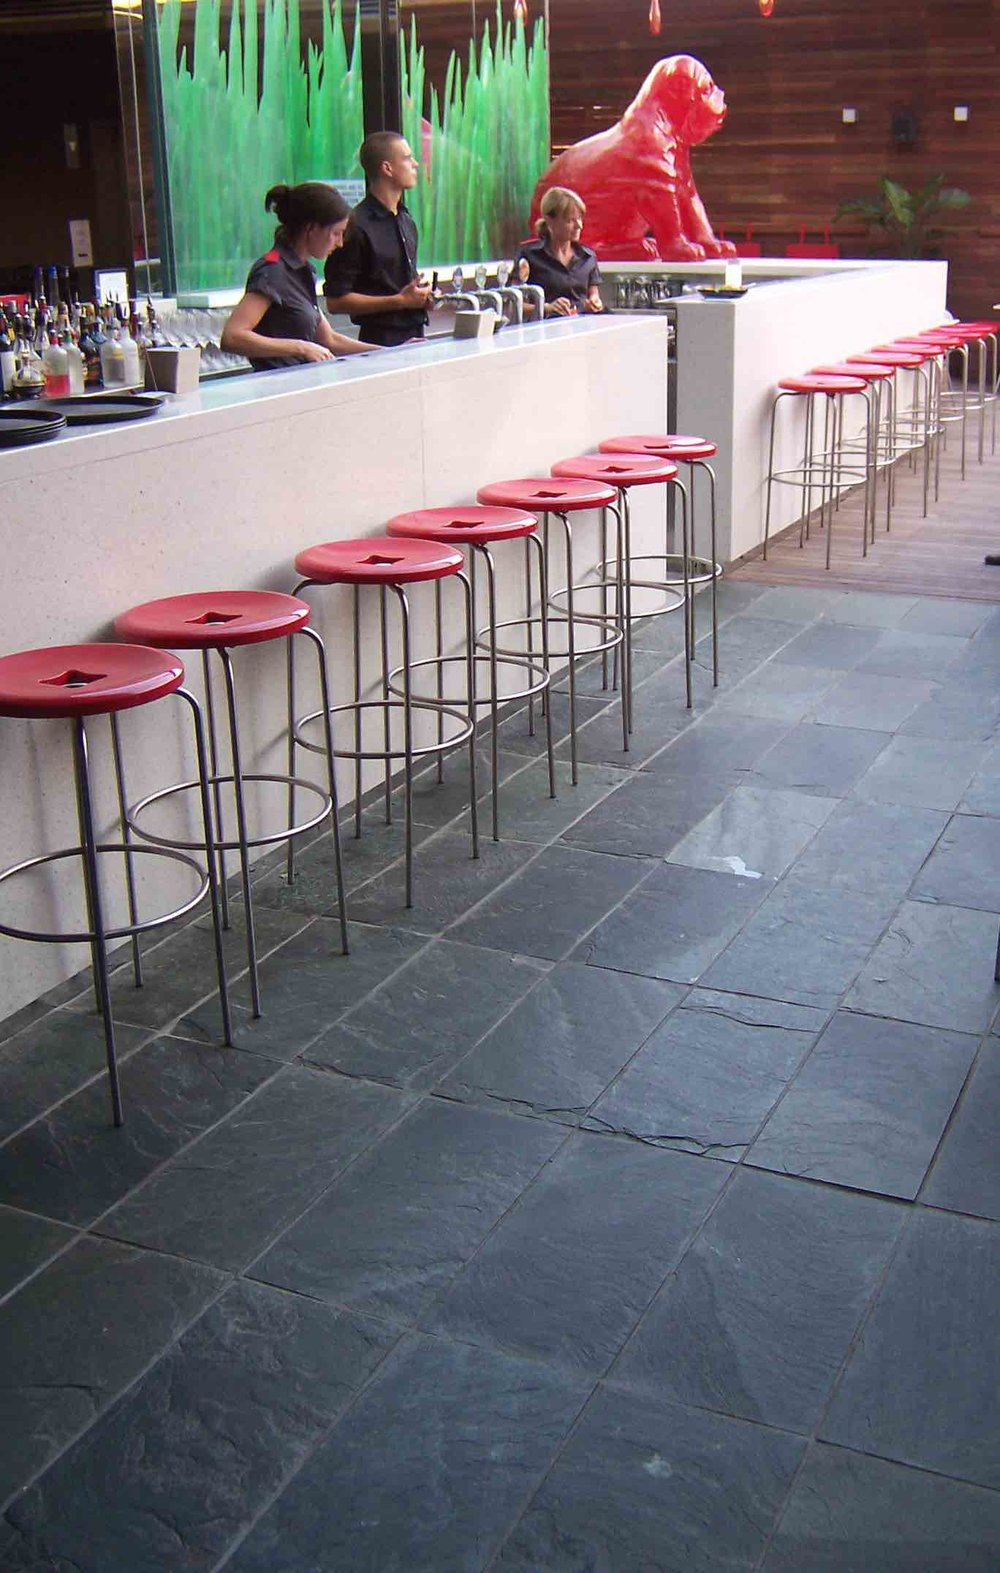 Arctic Green Floor Slate - The Eastern Hotel, Sydney